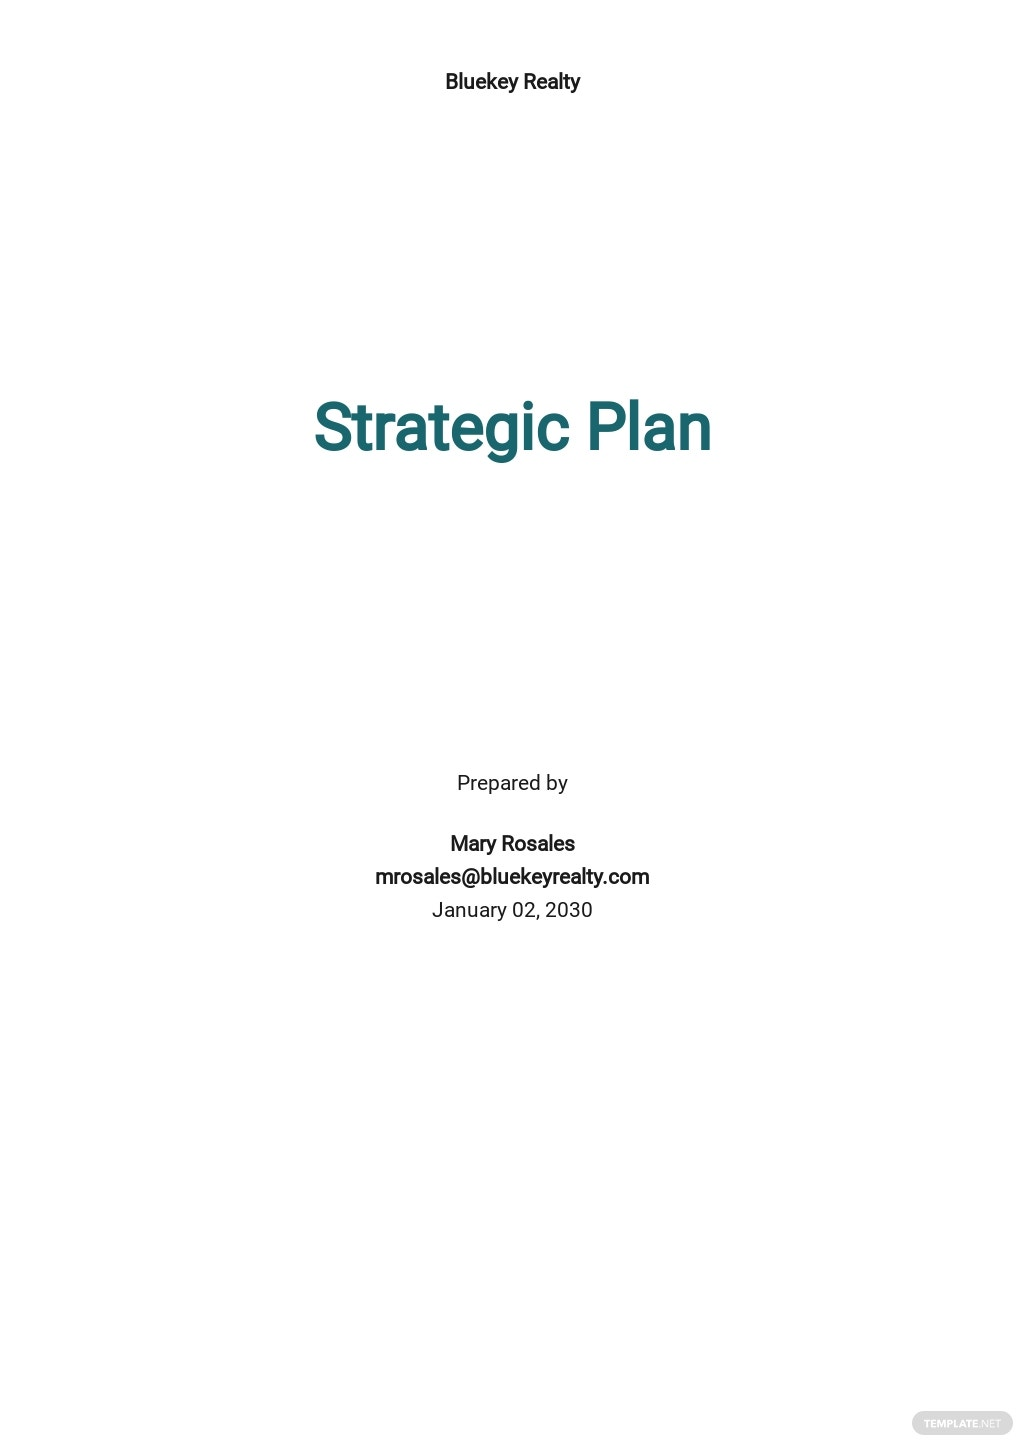 Real Estate / Property Strategic Plan Template